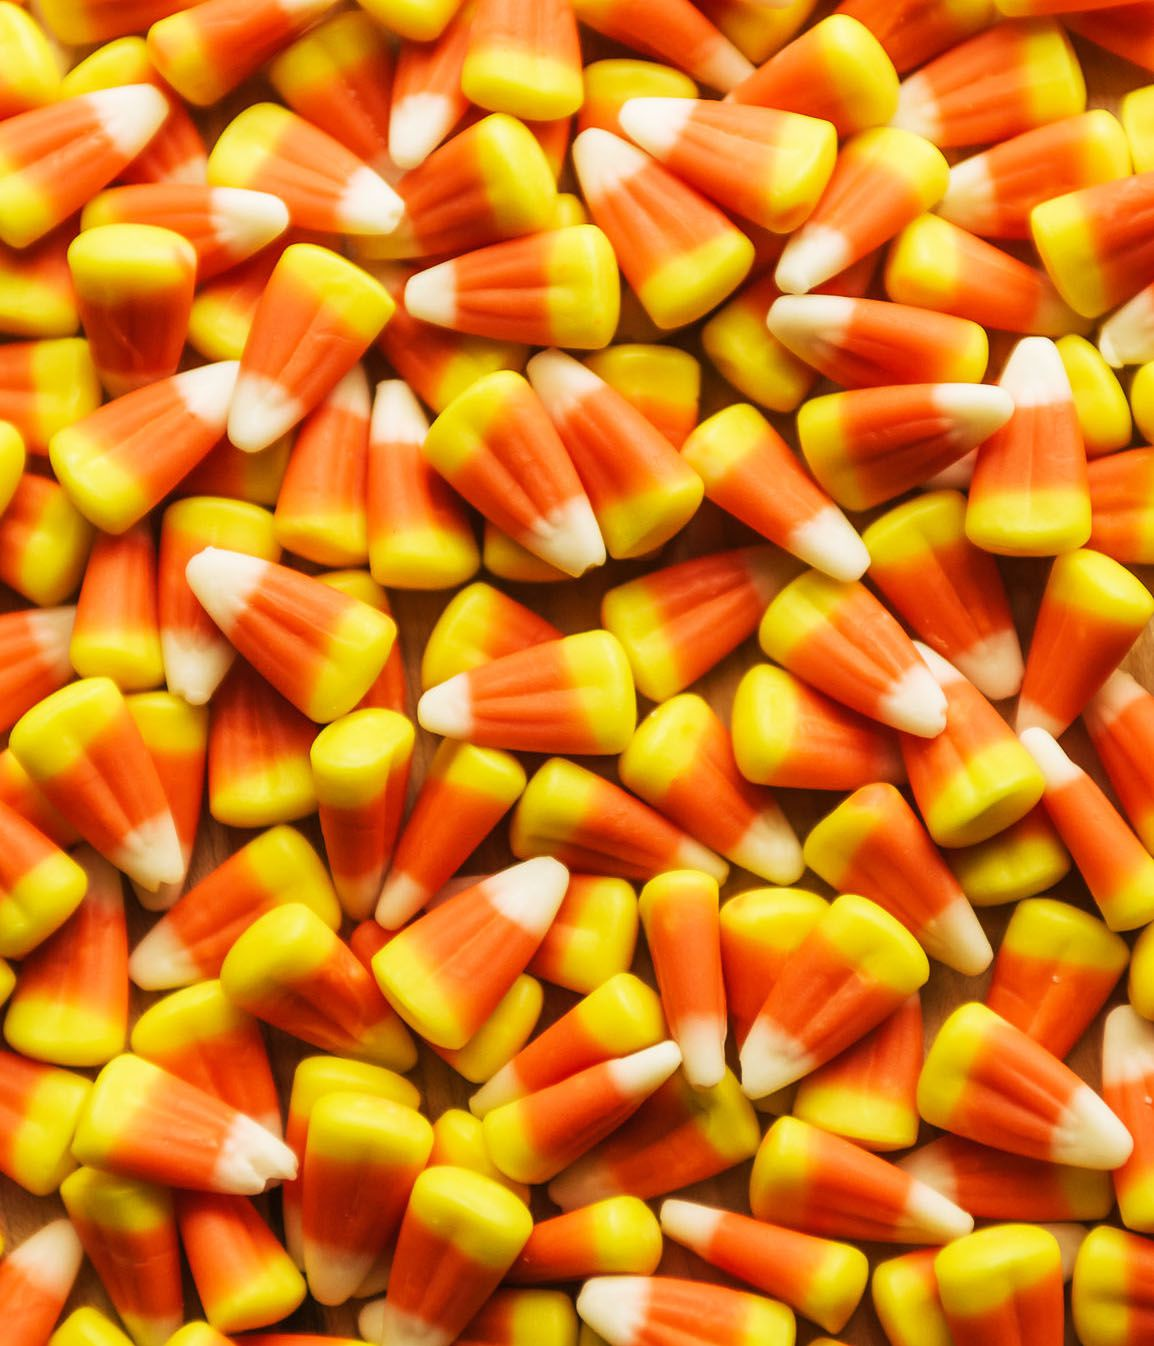 We Ranked 15 Halloween Candies By Nutritional Value